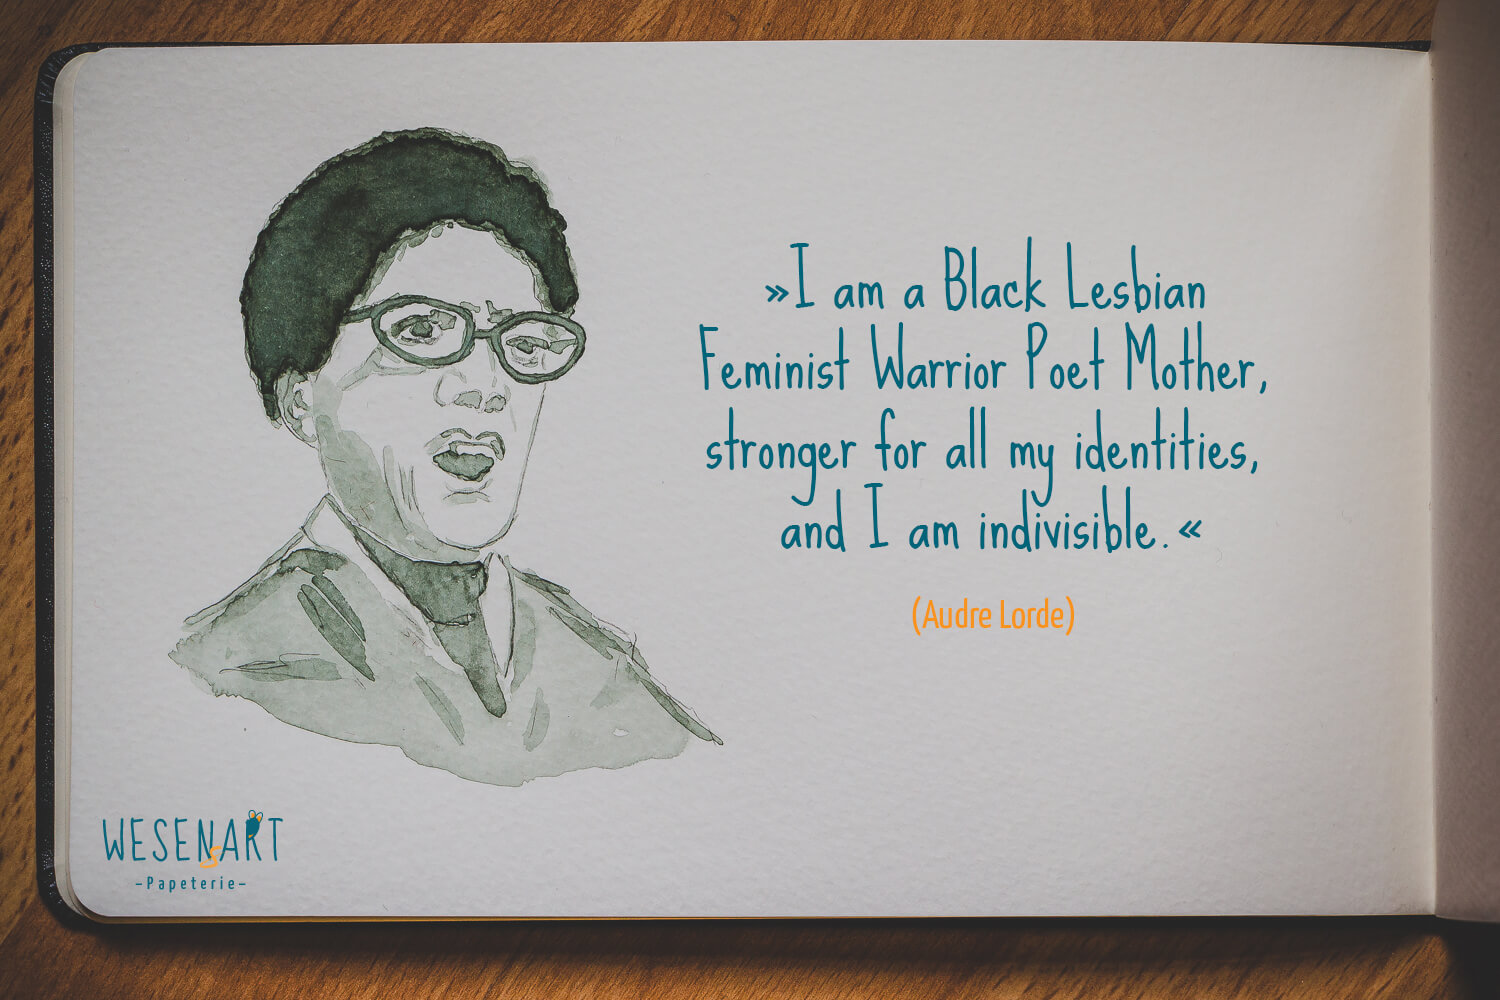 »I am a Black Lesbian Feminist Warrior Poet Mother, stronger for all my identities, and I am indivisible.« (Audre Lorde)